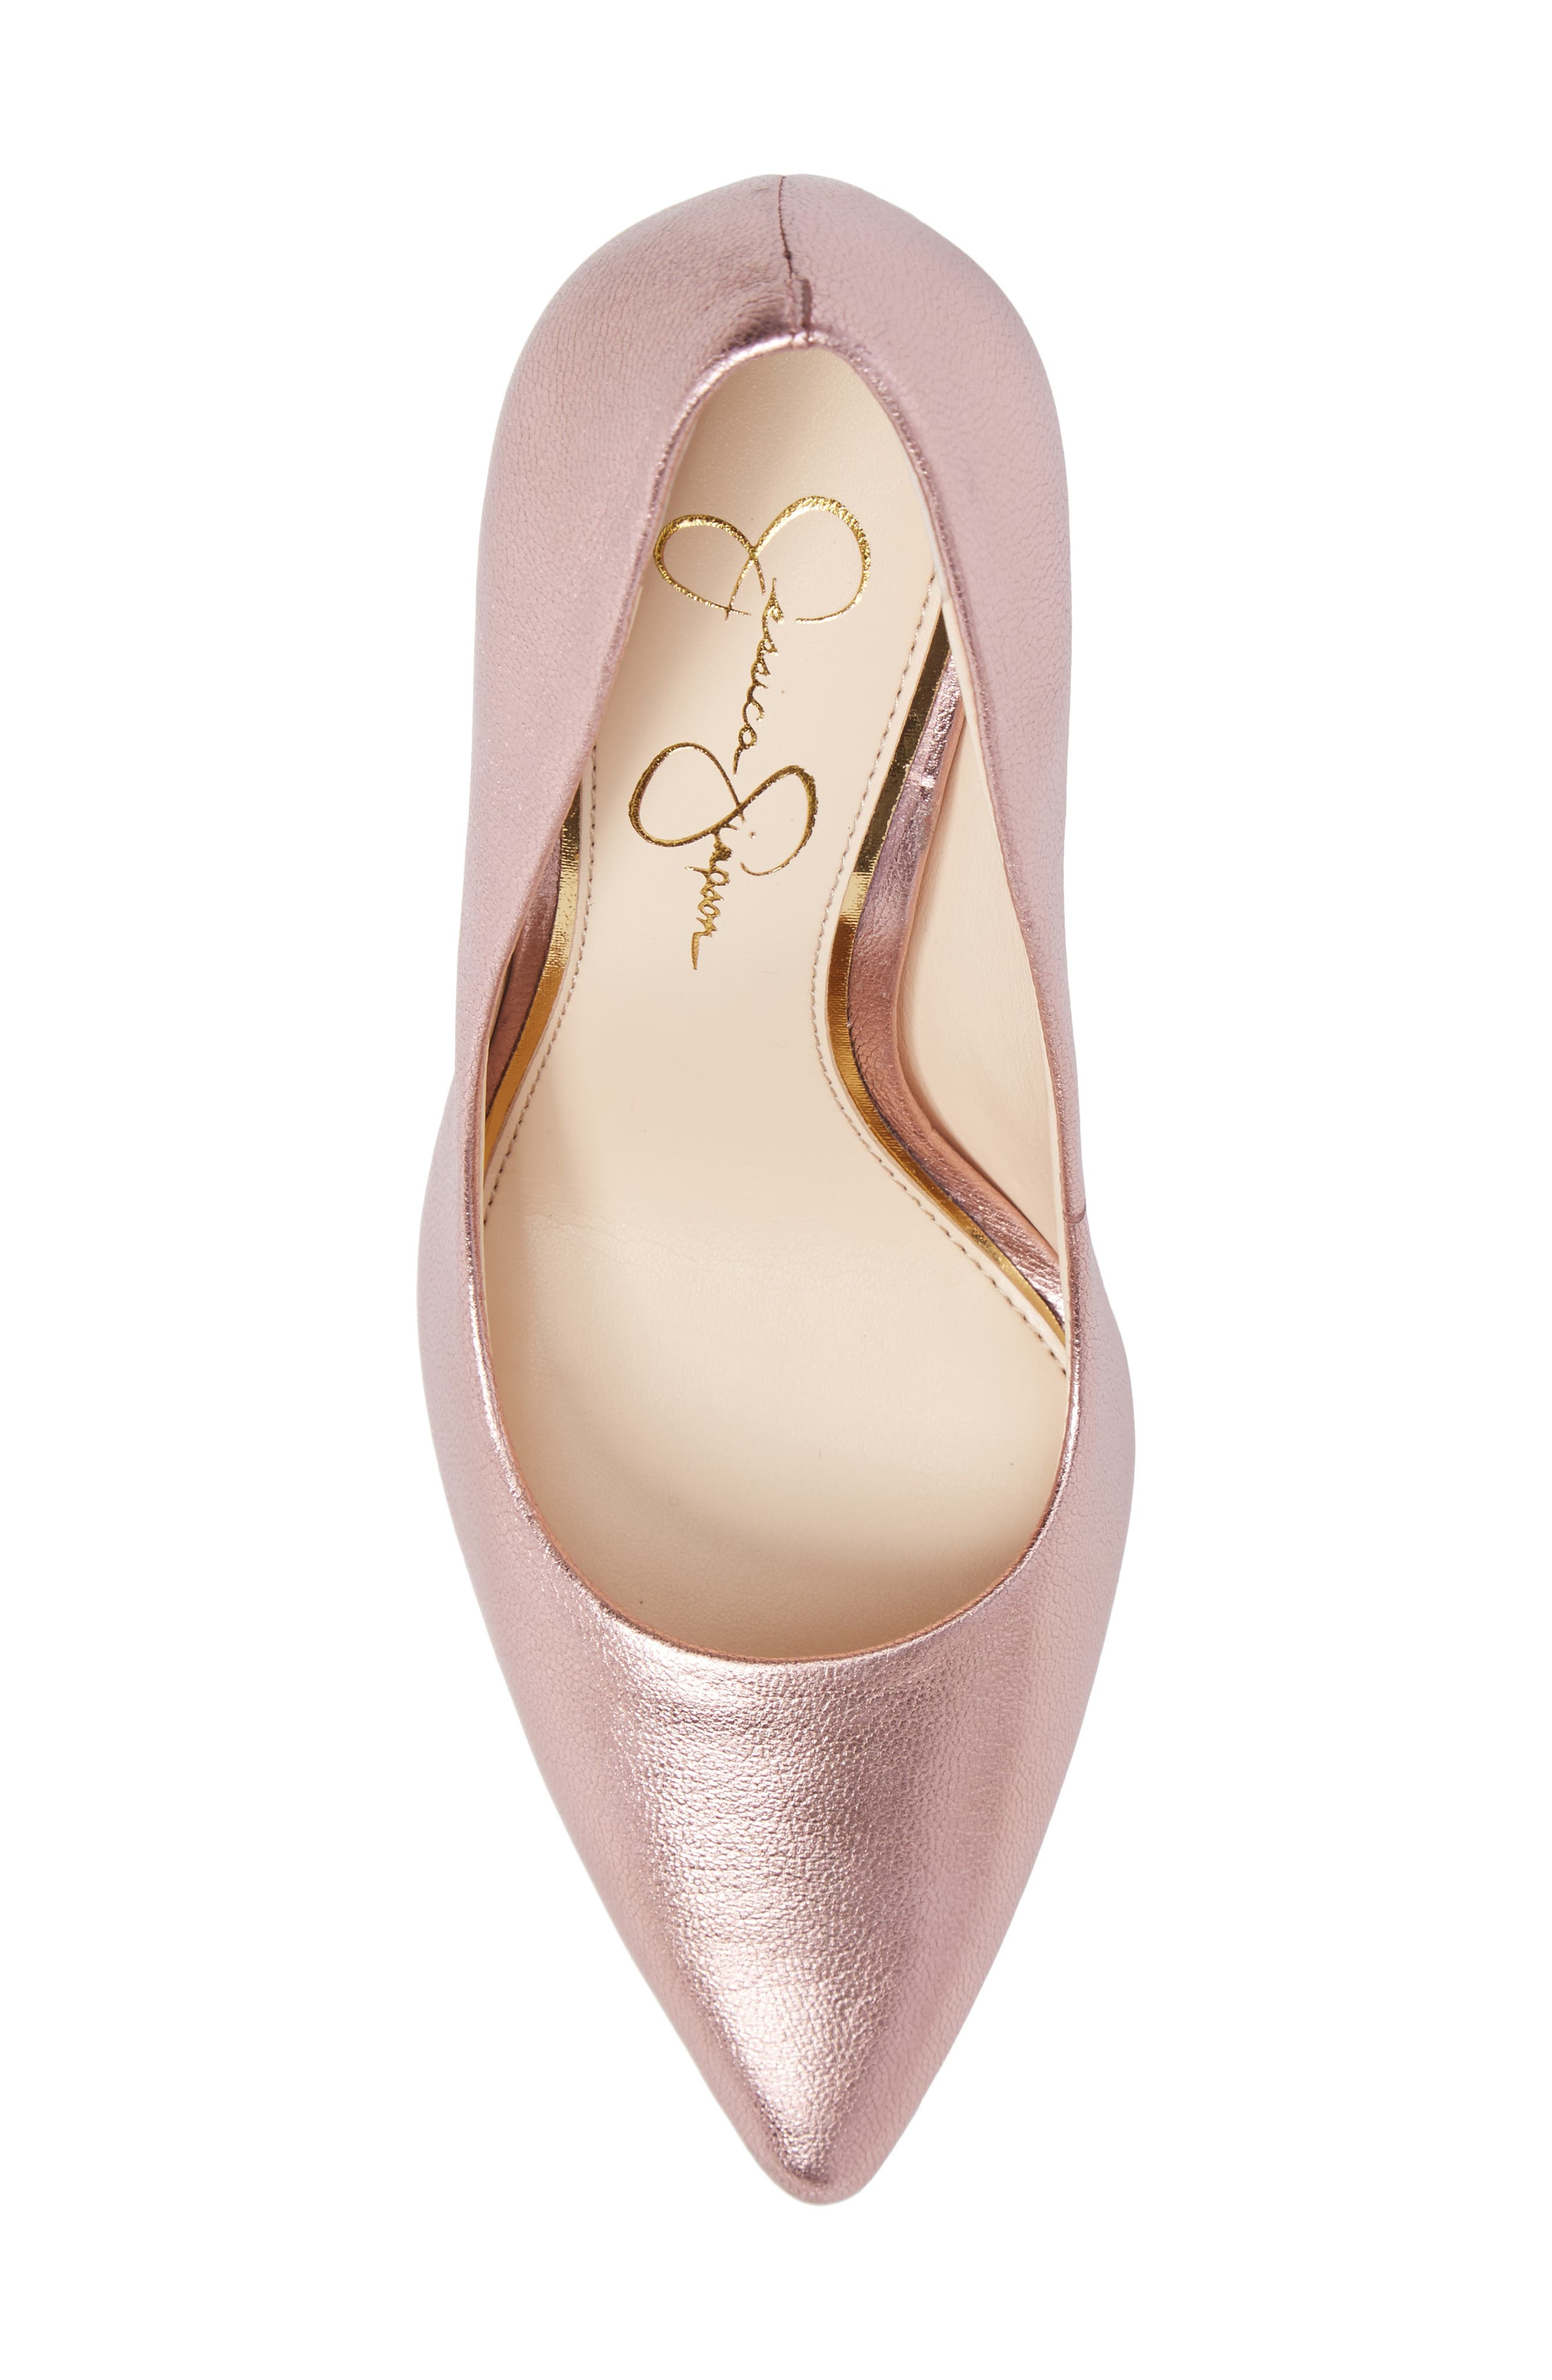 Praylee Pointy Toe Pump,                             Alternate thumbnail 5, color,                             Dolly Pink Leather